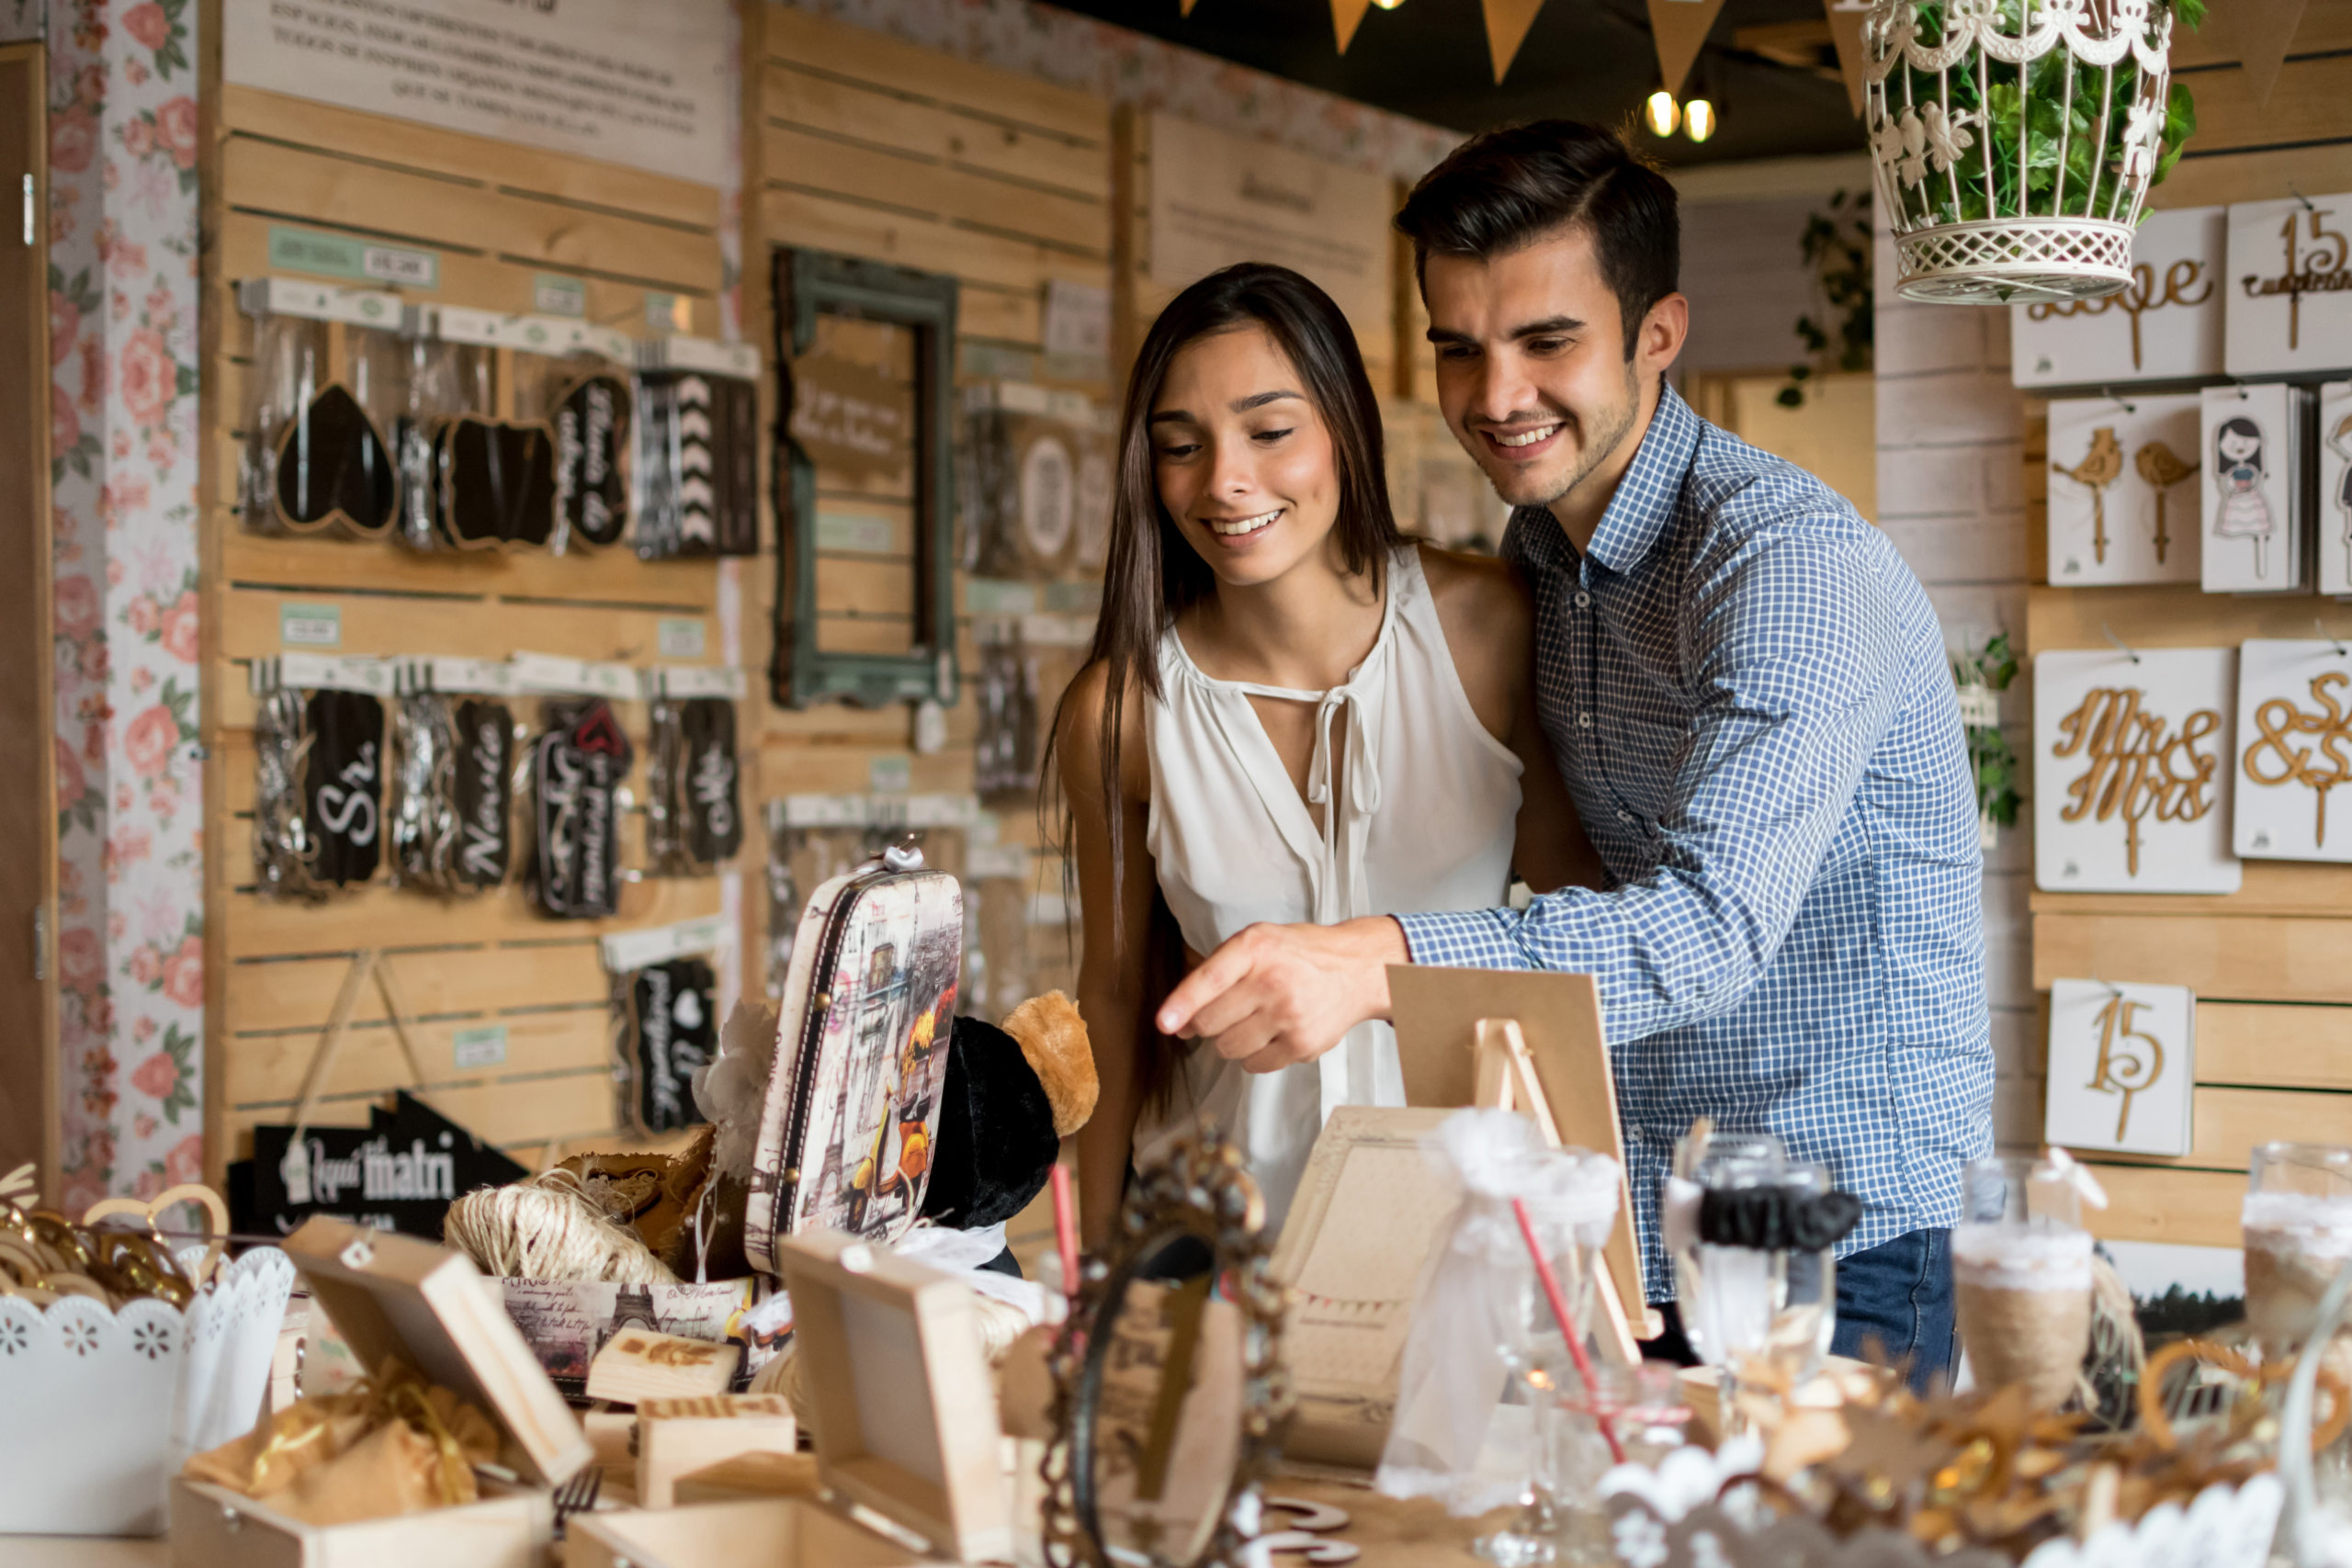 Young couple looking for wedding favors at a small business